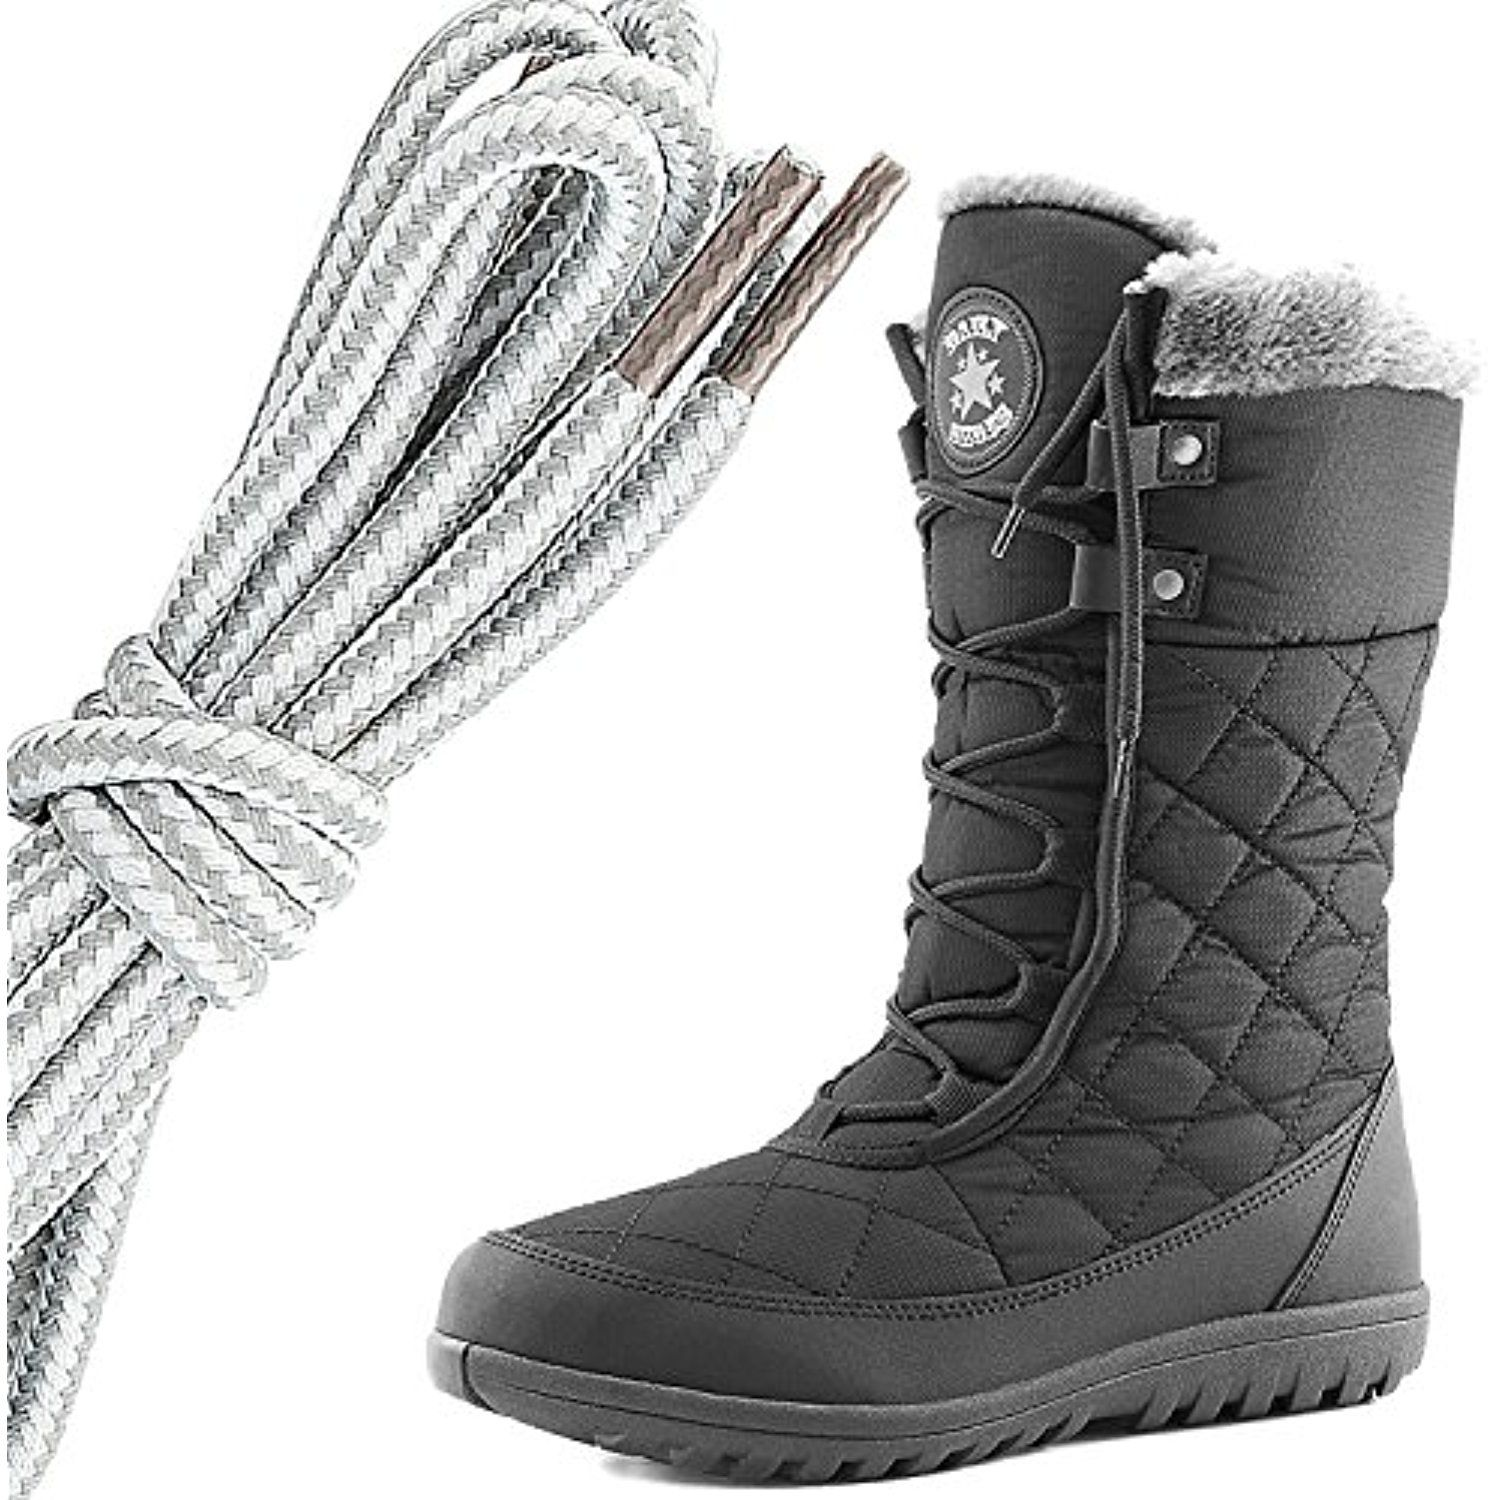 Women's Comfort Round Toe Mid Calf Flat Ankle High Eskimo Winter Fur Snow Boots Brown Taupe